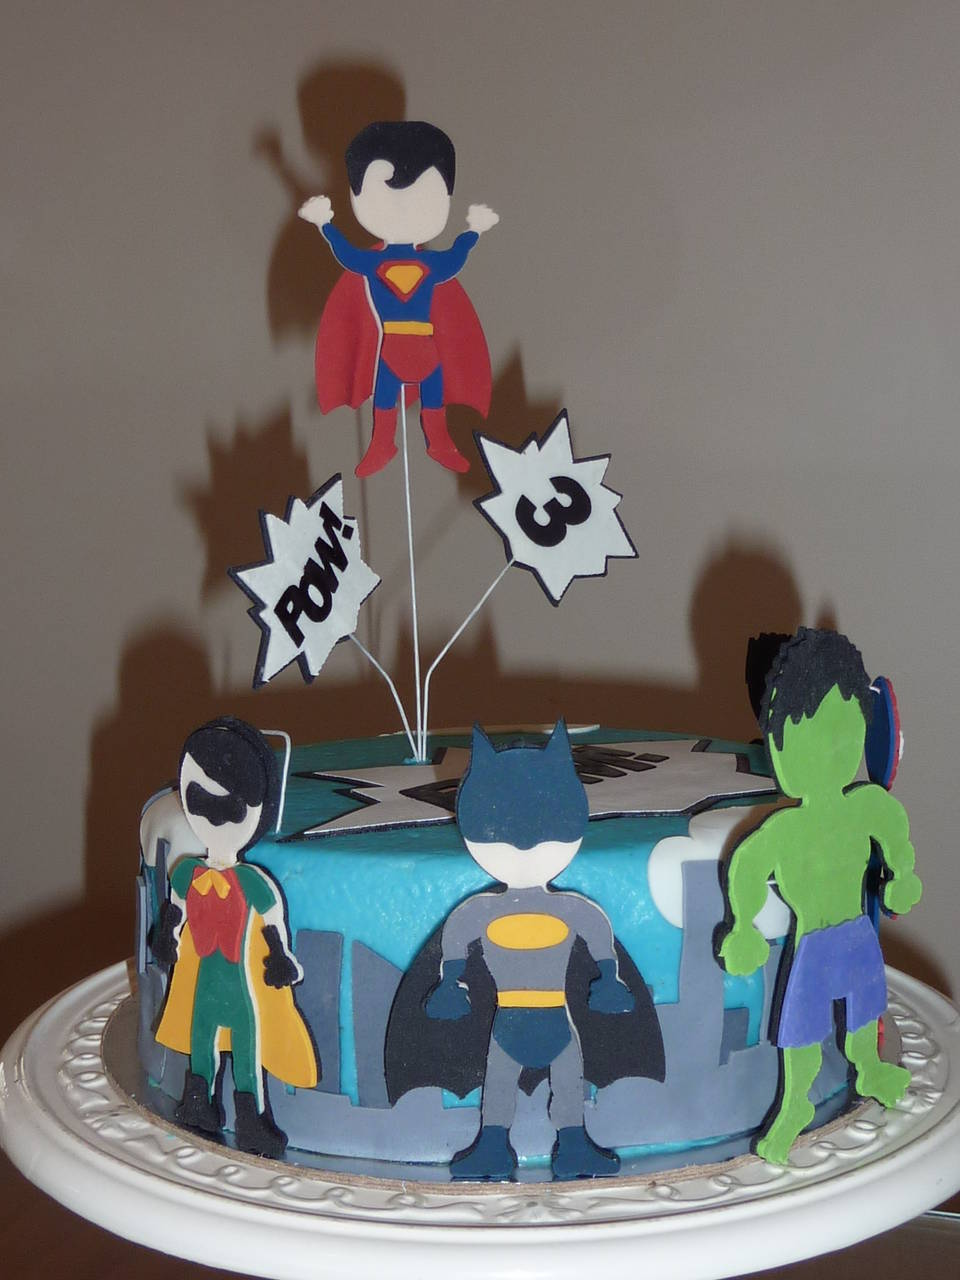 Ryder's Super Hero 3rd Birthday Cake